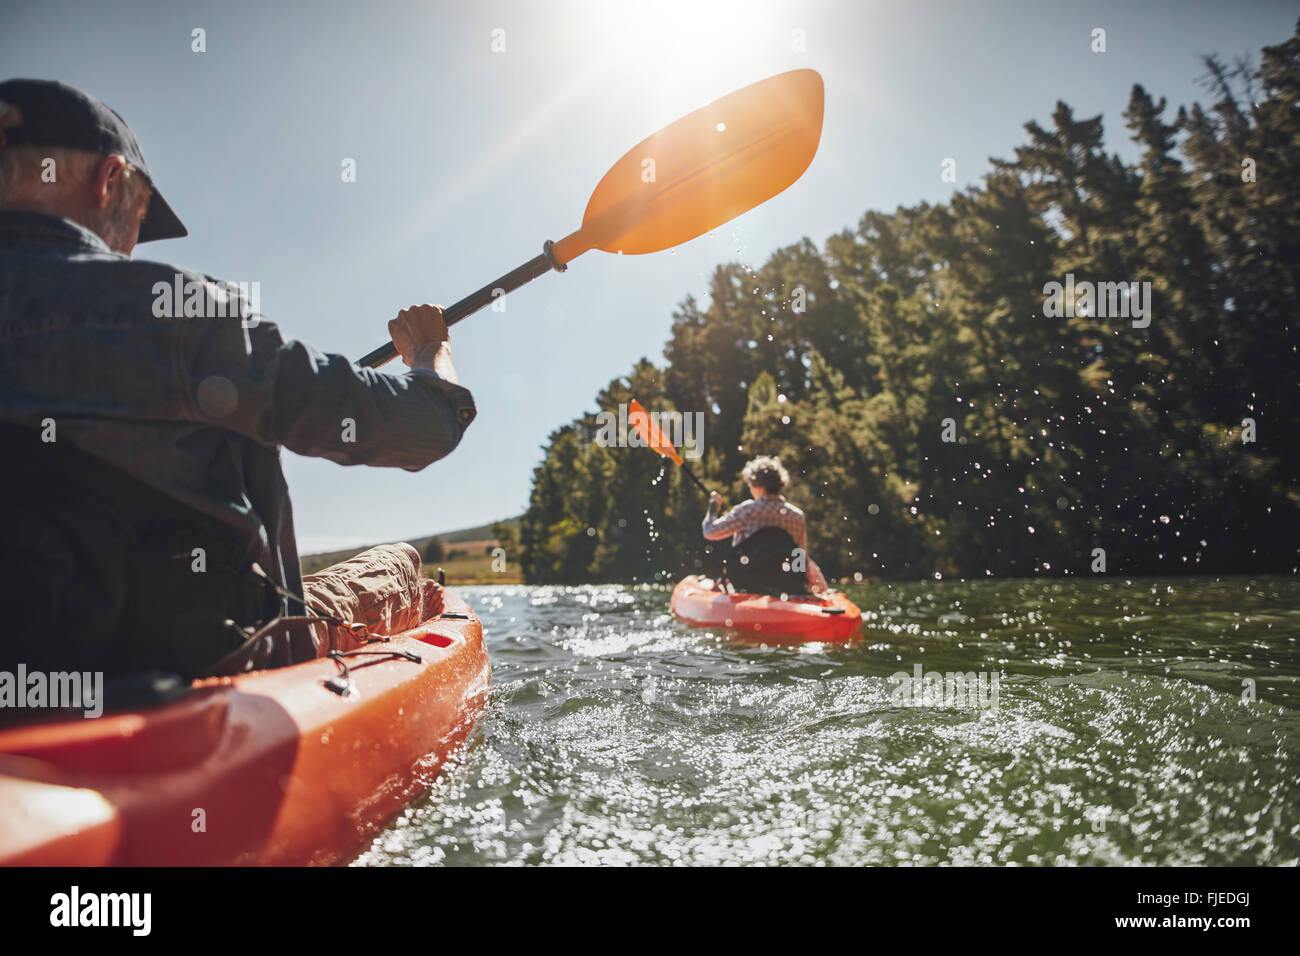 Outdoor shot of senior man canoeing in the lake with woman in background on a summer day. Man and woman in two different Stock Photo